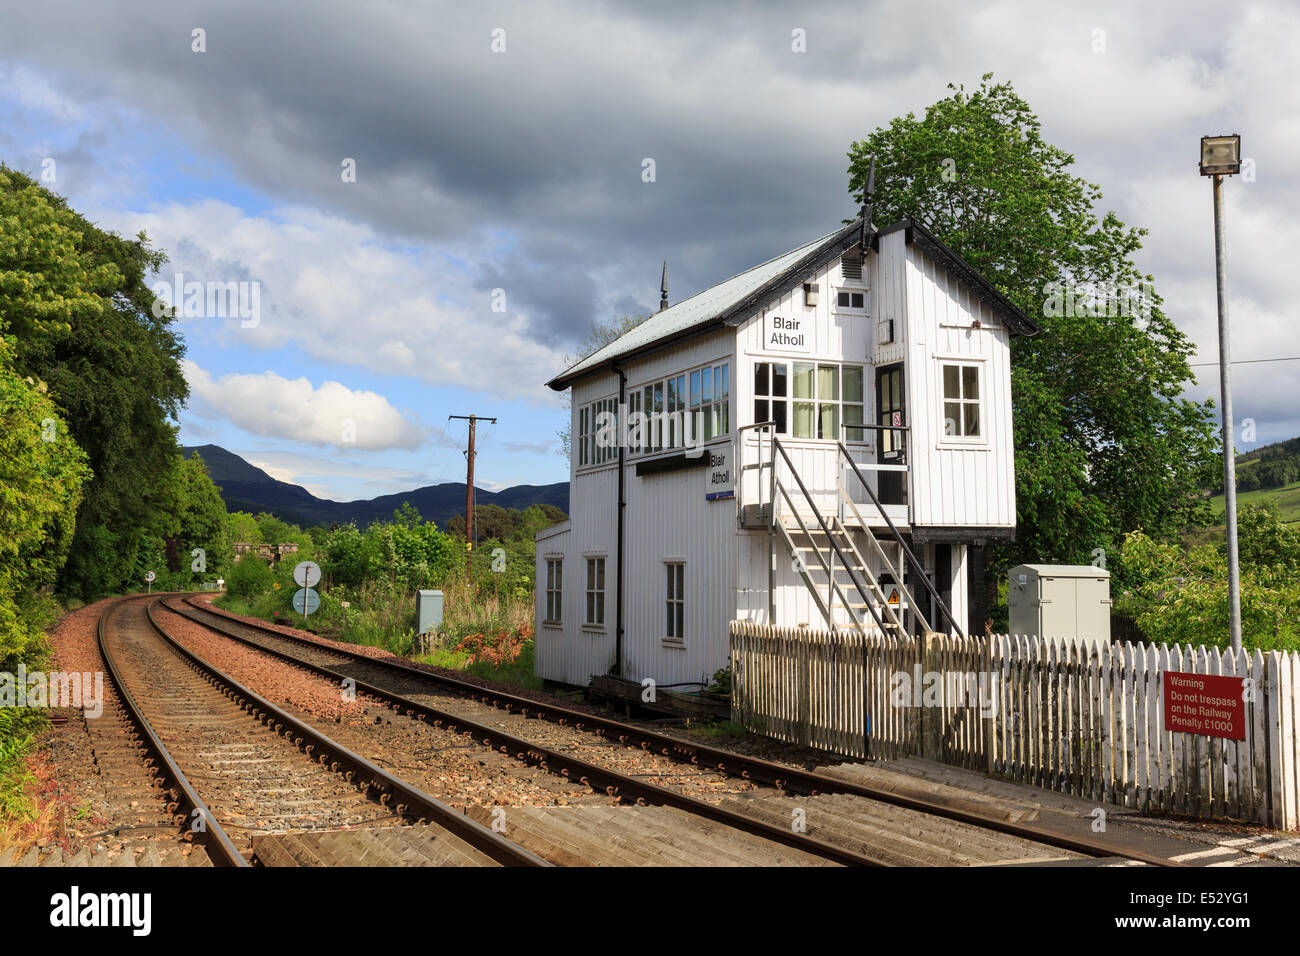 Traditional old railway signal box on main line between Edinburgh and Inverness at Blair Atholl, Perth and Kinross, - Stock Image